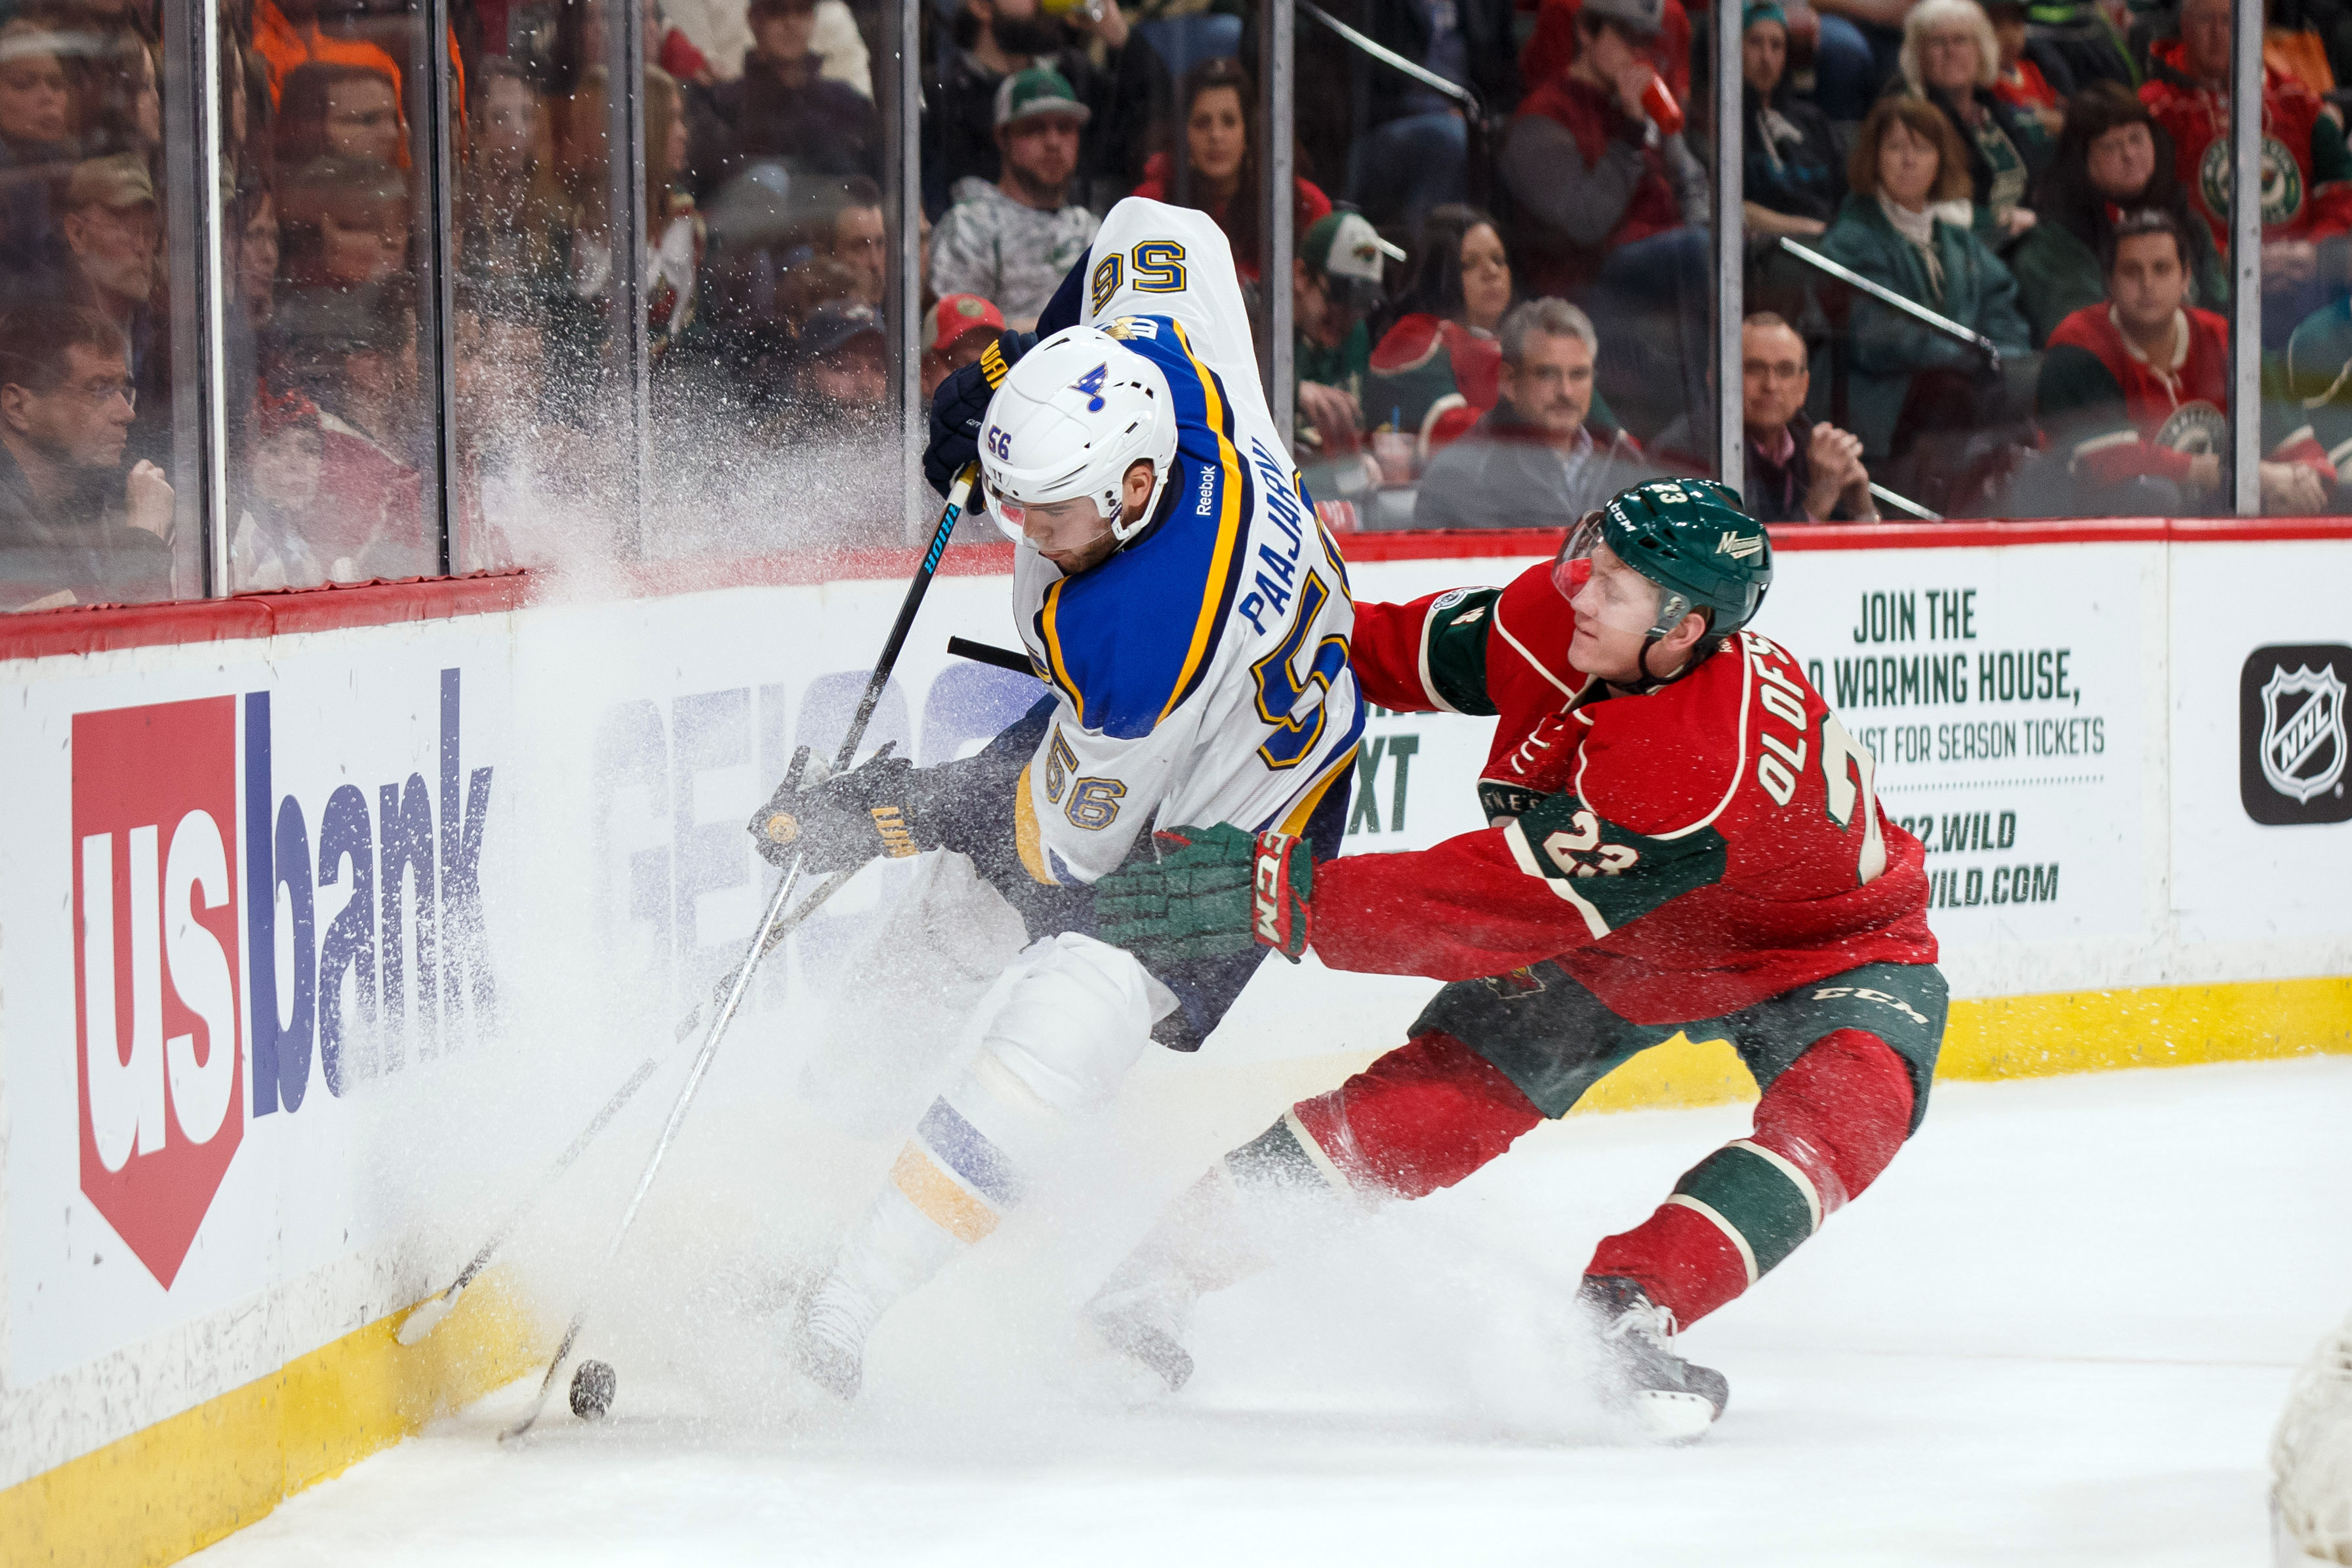 Nhl playoffs minnesota wild vs st louis blues prediction mar 7 2017 saint paul mn usa st louis blues forward magnus paajarvi 56 and minnesota wild defenseman gustav olofsson 23 skate after the puck and in publicscrutiny Choice Image